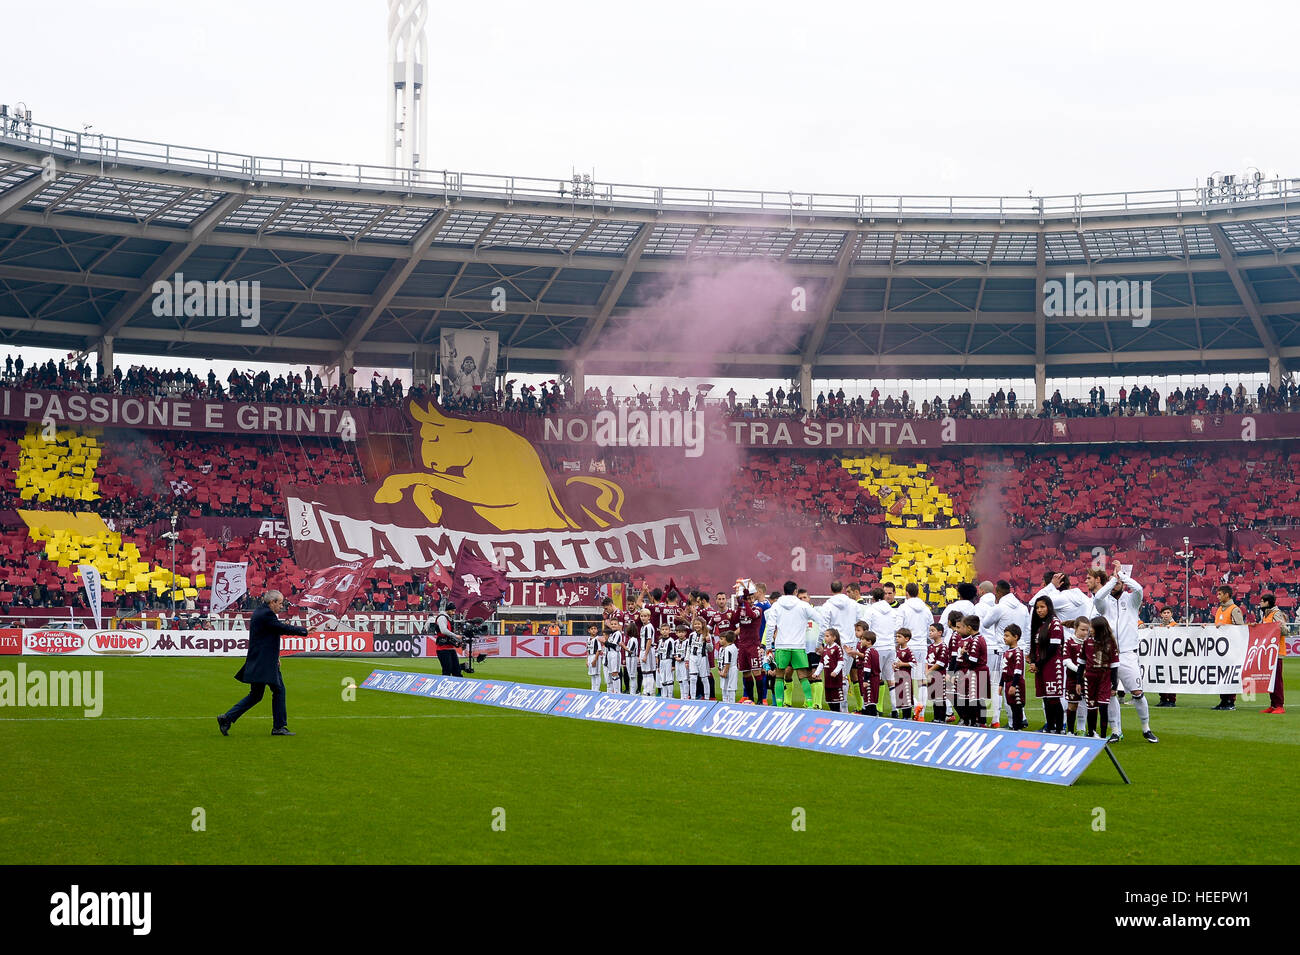 Turin, Italy. 2016, 11 december: The atmosphere during the Serie A football match between Torino FC and Juventus - Stock Image